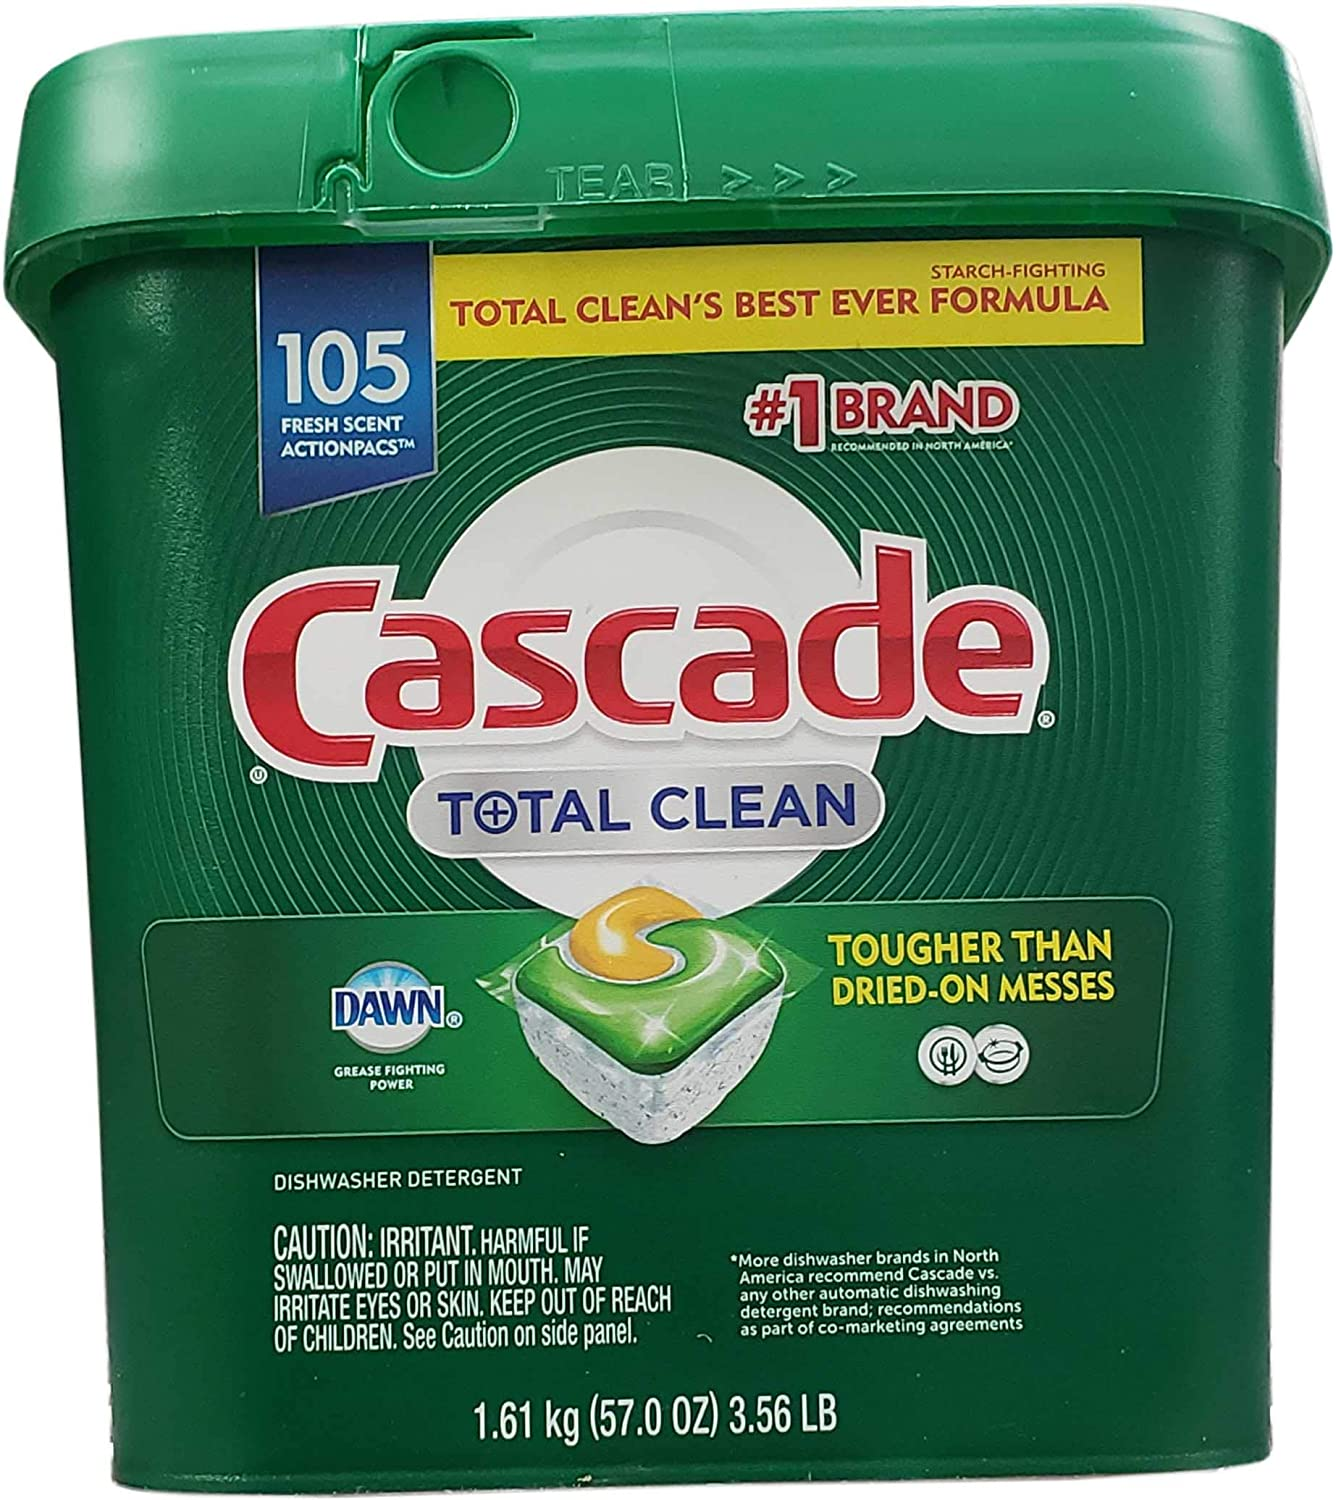 Cascade Total Clean Dishwasher Detergent Fresh 105 Scent ActionPacs Net Wt 57 Ounce